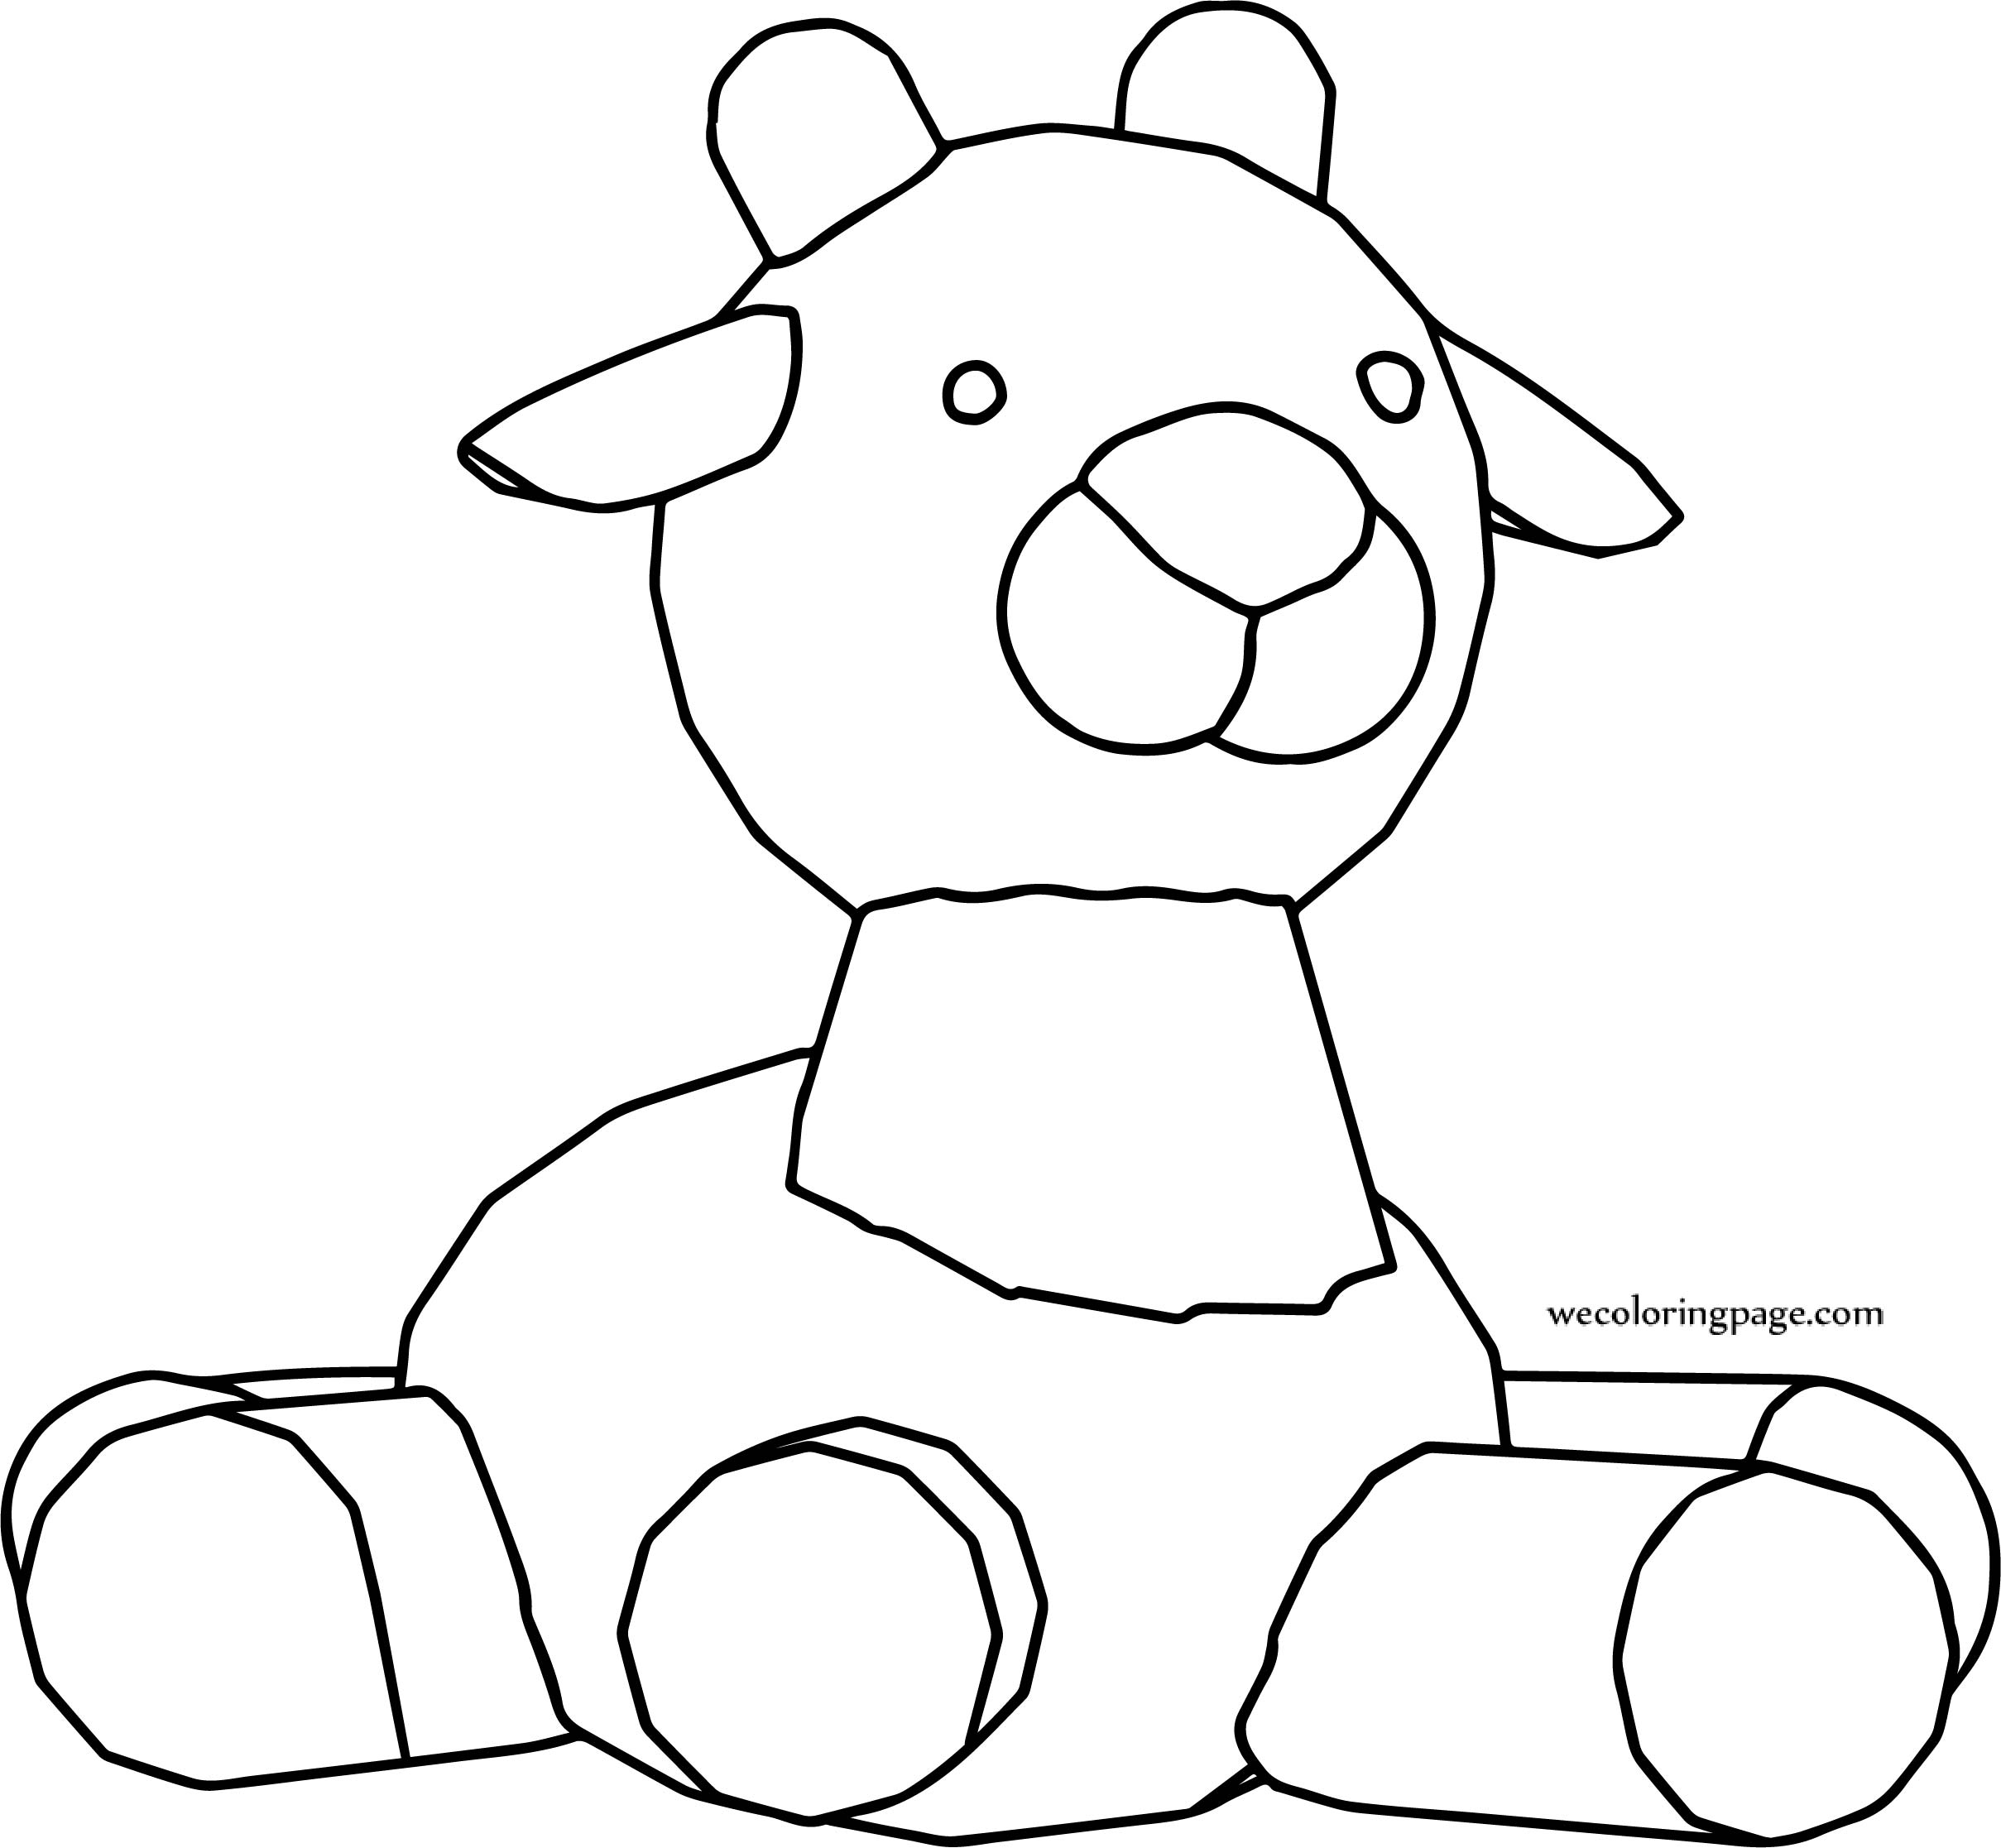 Staying Horse Cartoon Coloring Page